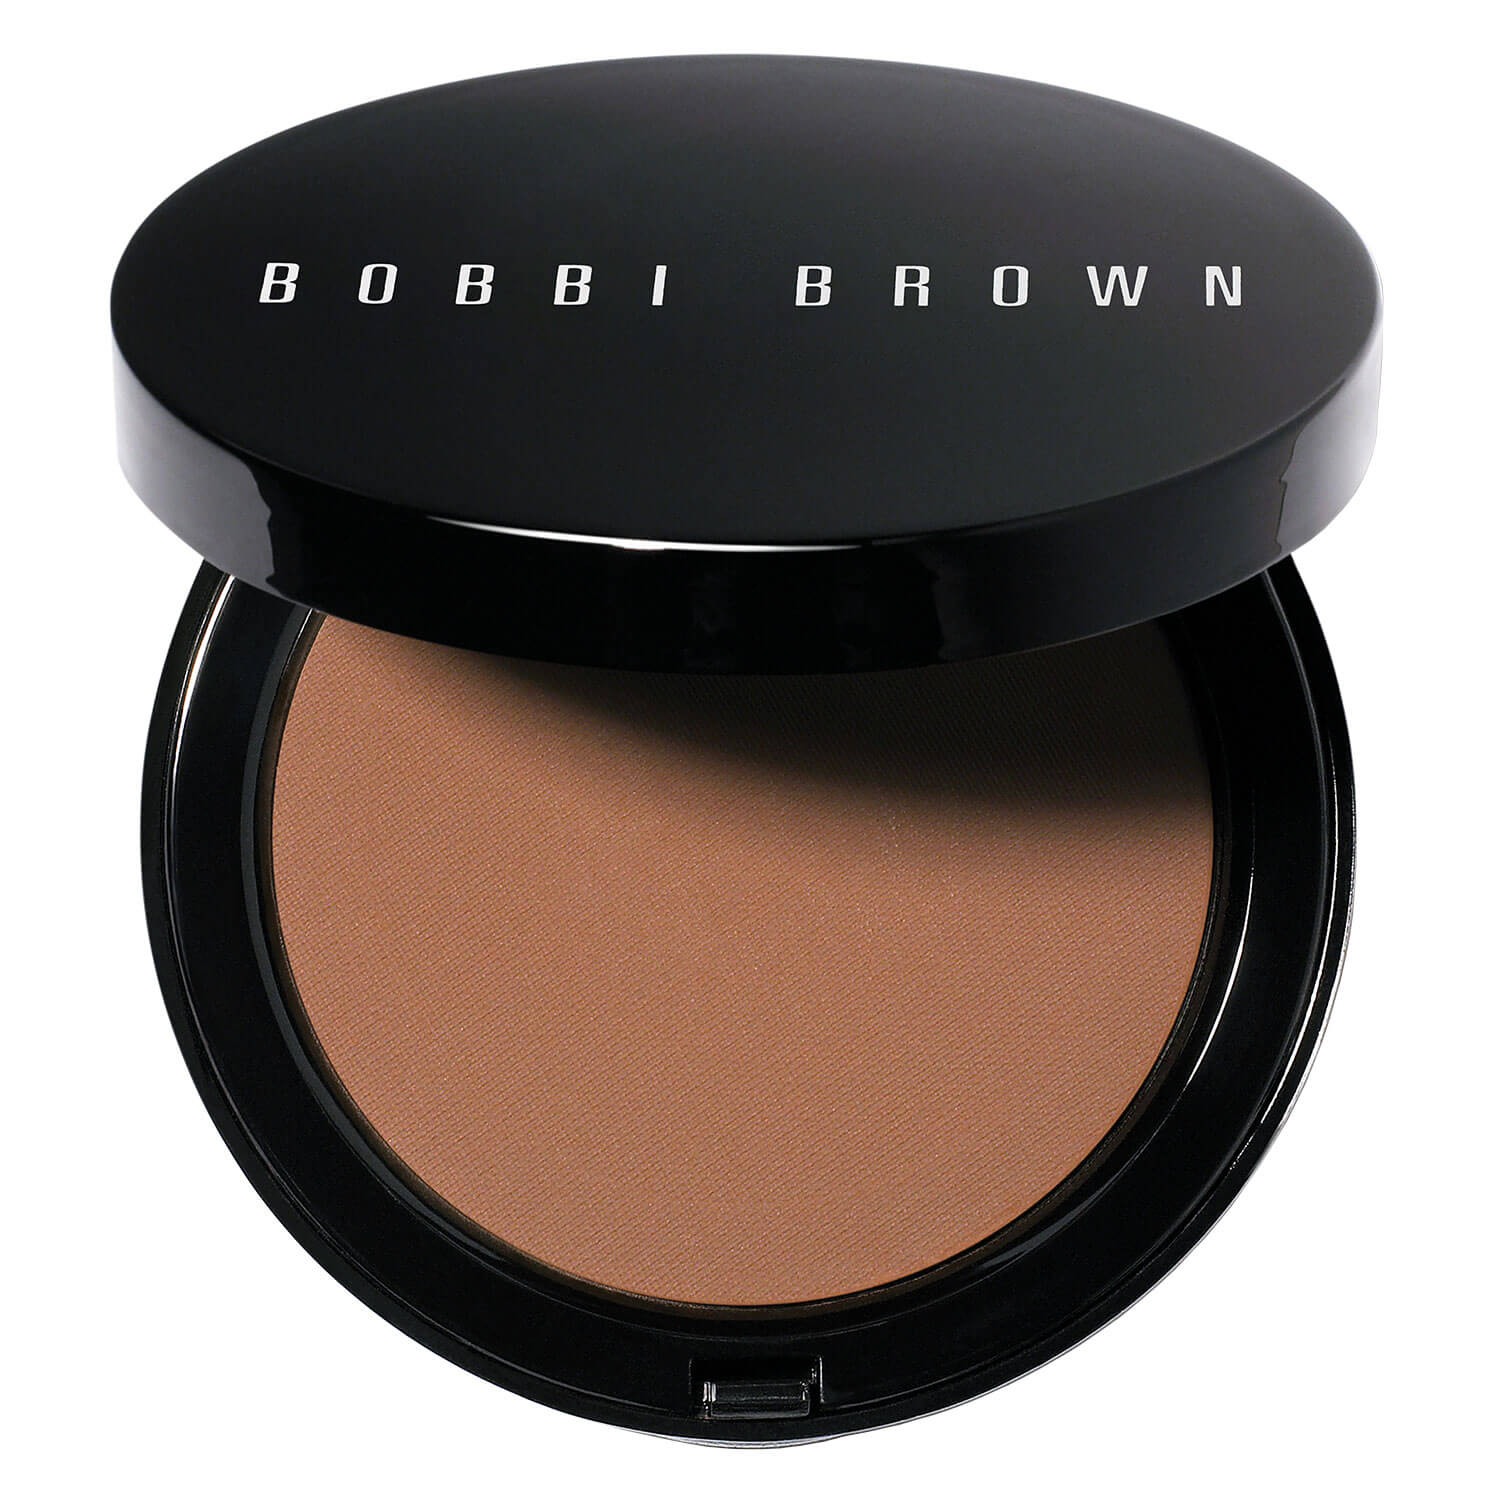 BB Bronzer - Bronzing Powder Deep